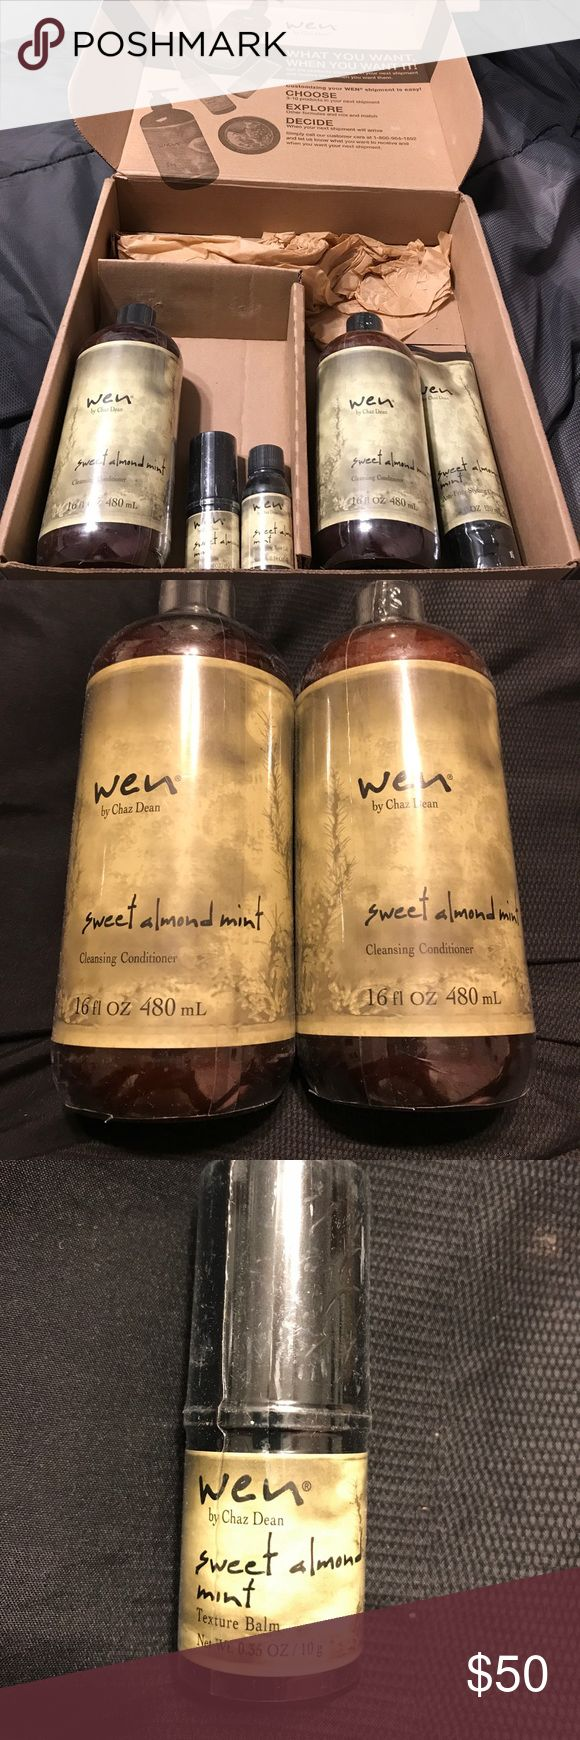 Partial Wen Hair Care set Includes: (2) 16oz Cleansing Conditioner-doubles as shampoo (1) .35oz Texture Balm (1) .14oz Volumizing Root Lifter (1) 4oz Anti Frizz Cream. All sweet almond mint scent and all brand new, unopened Wen by Chaz Dean Other